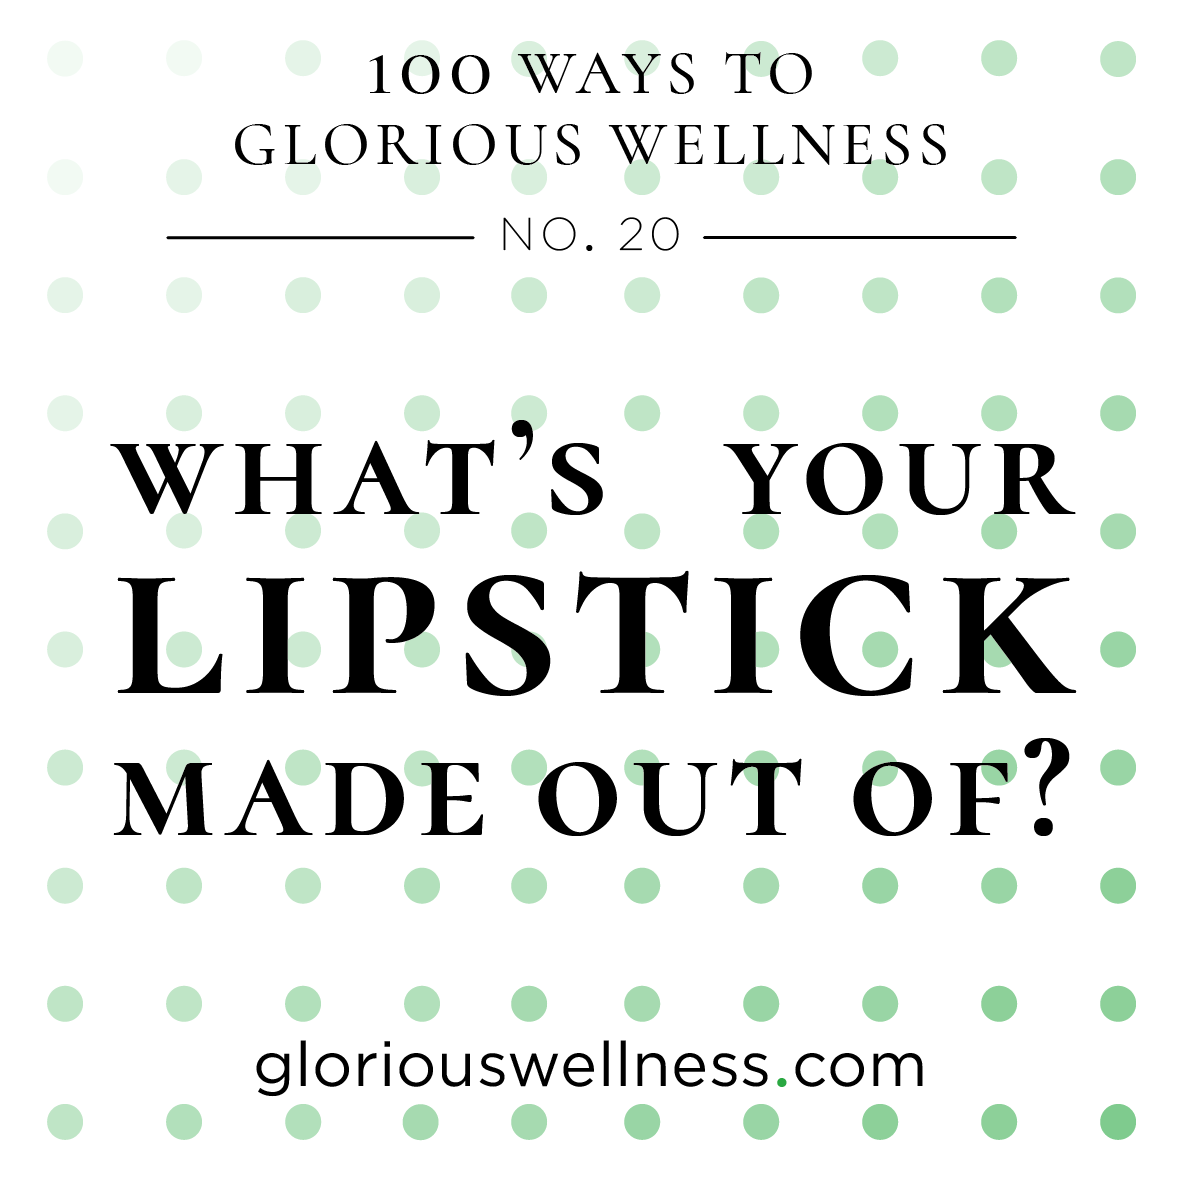 No. 20 - What's Your Lipstick Made Out Of?